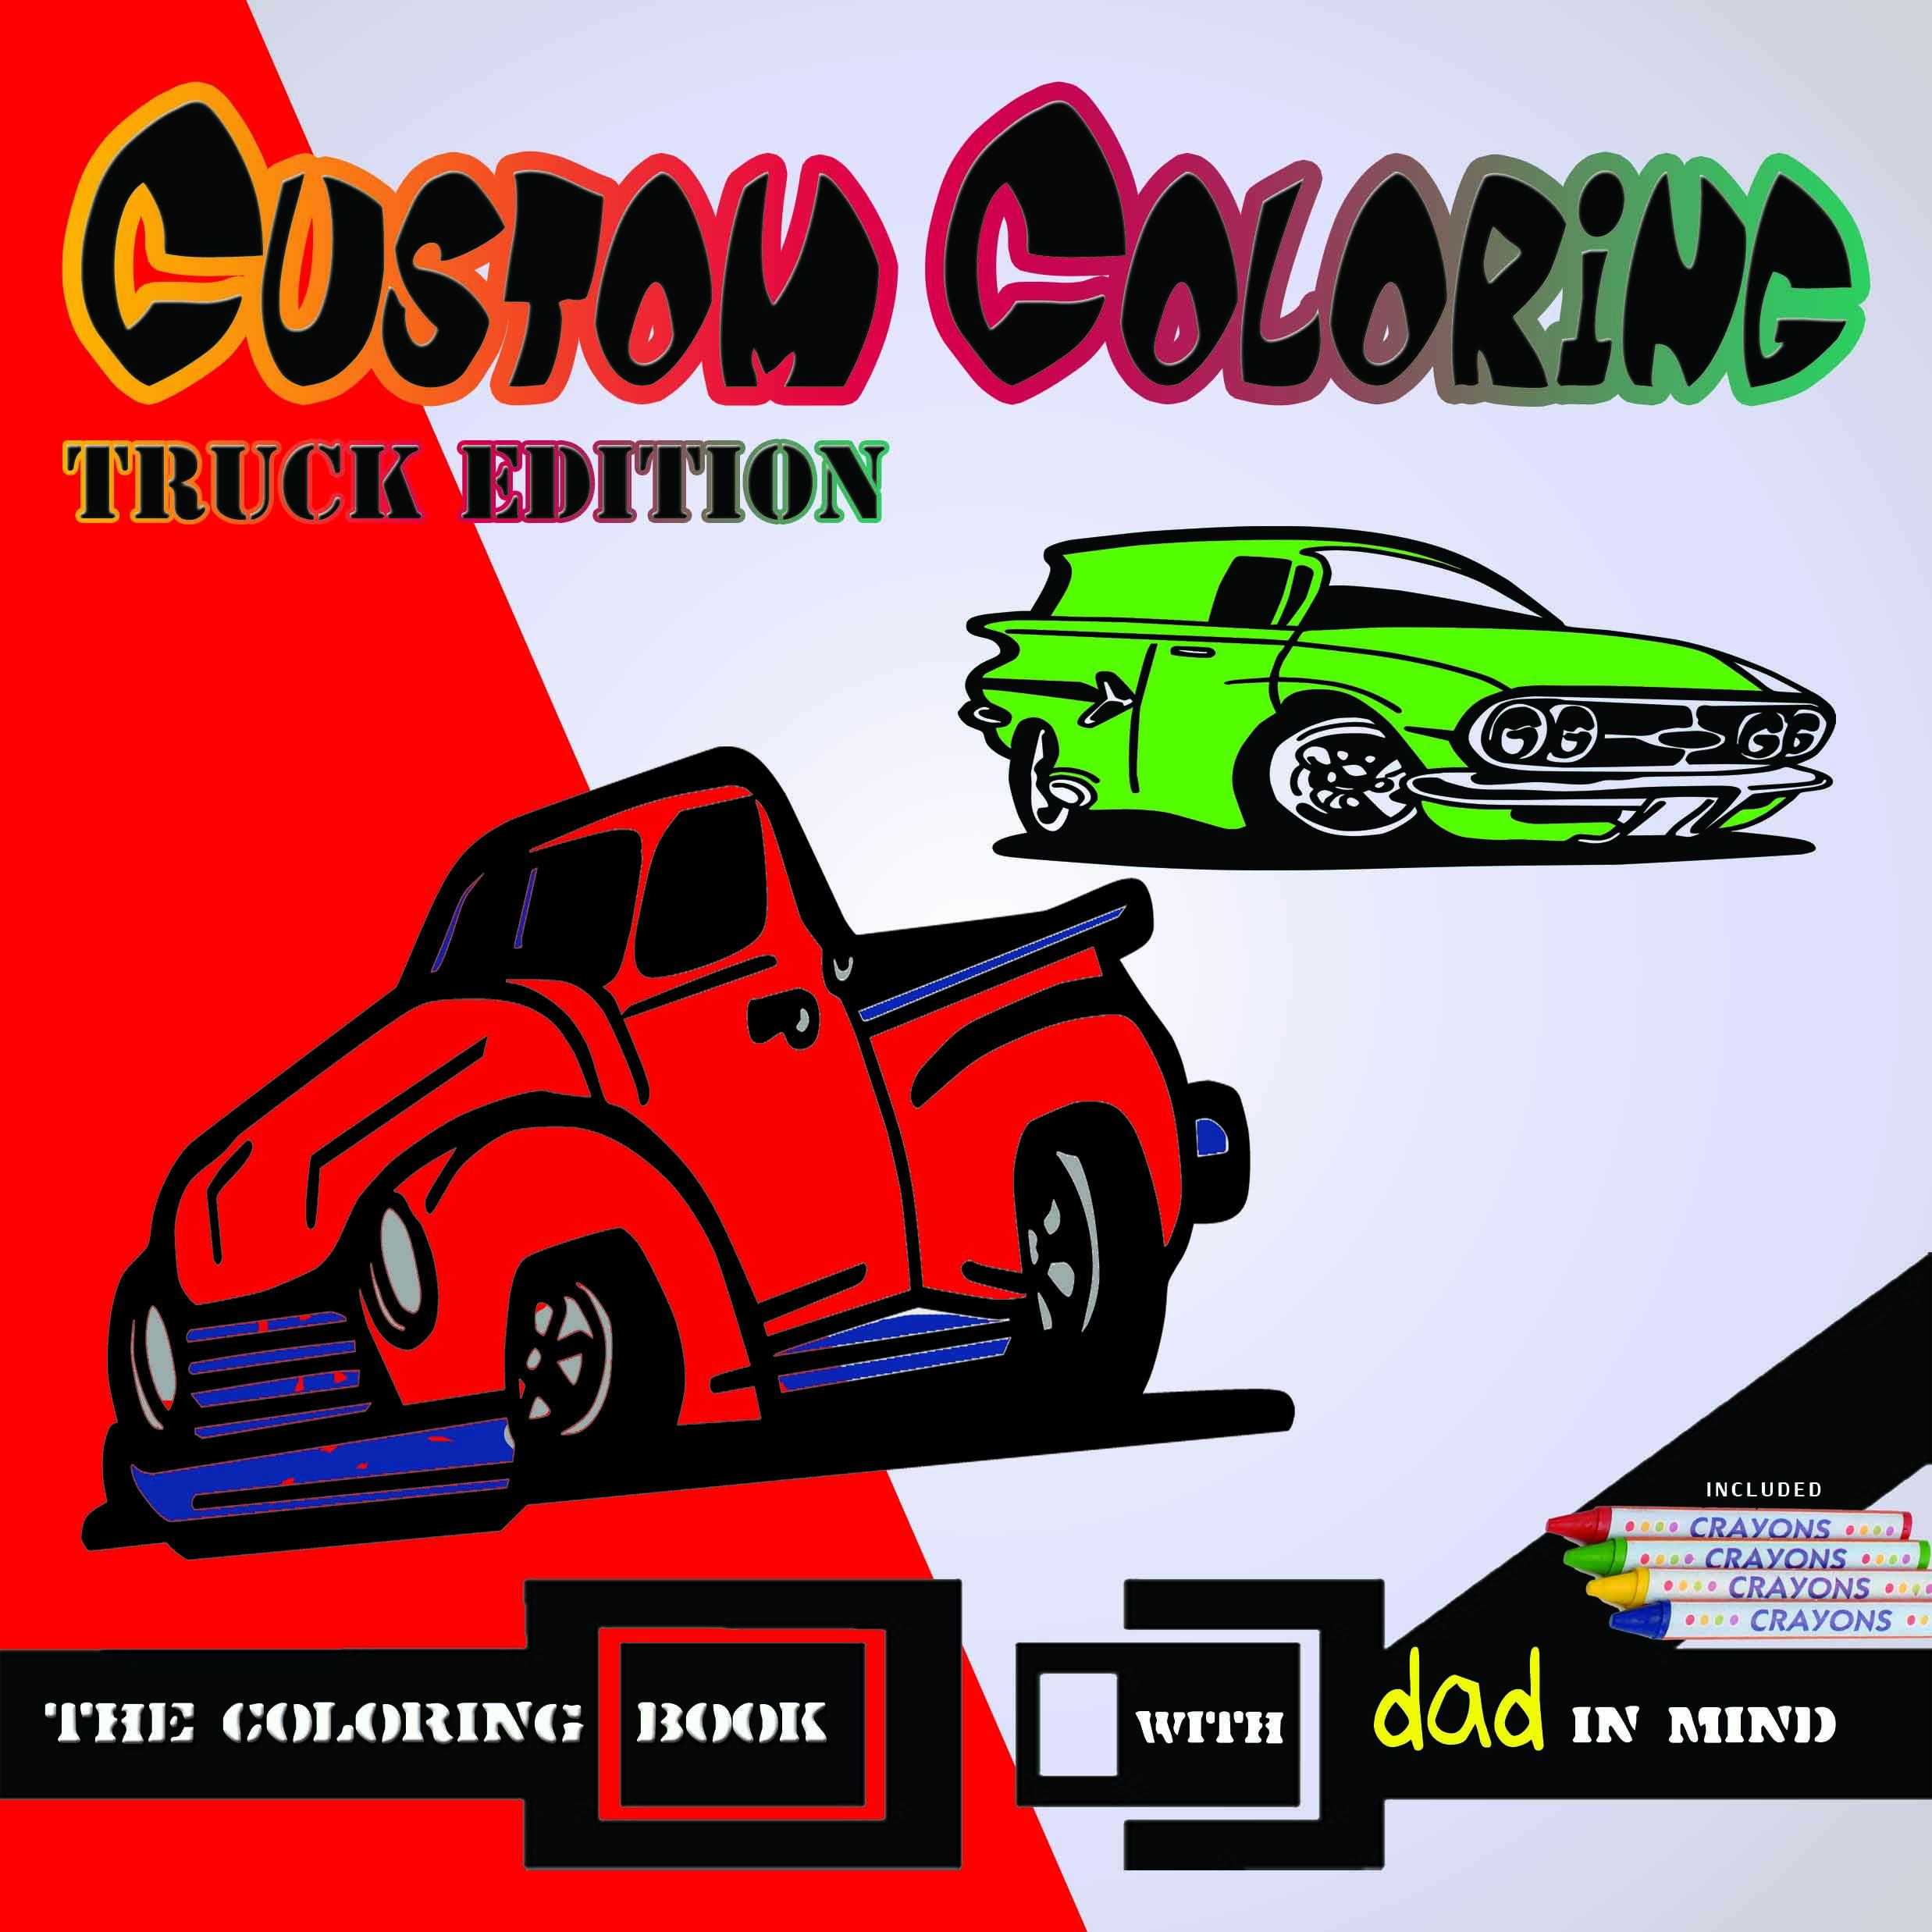 coloring fun with trucks from the early 1900s custom clipart and crayons included make this - Custom Coloring Book